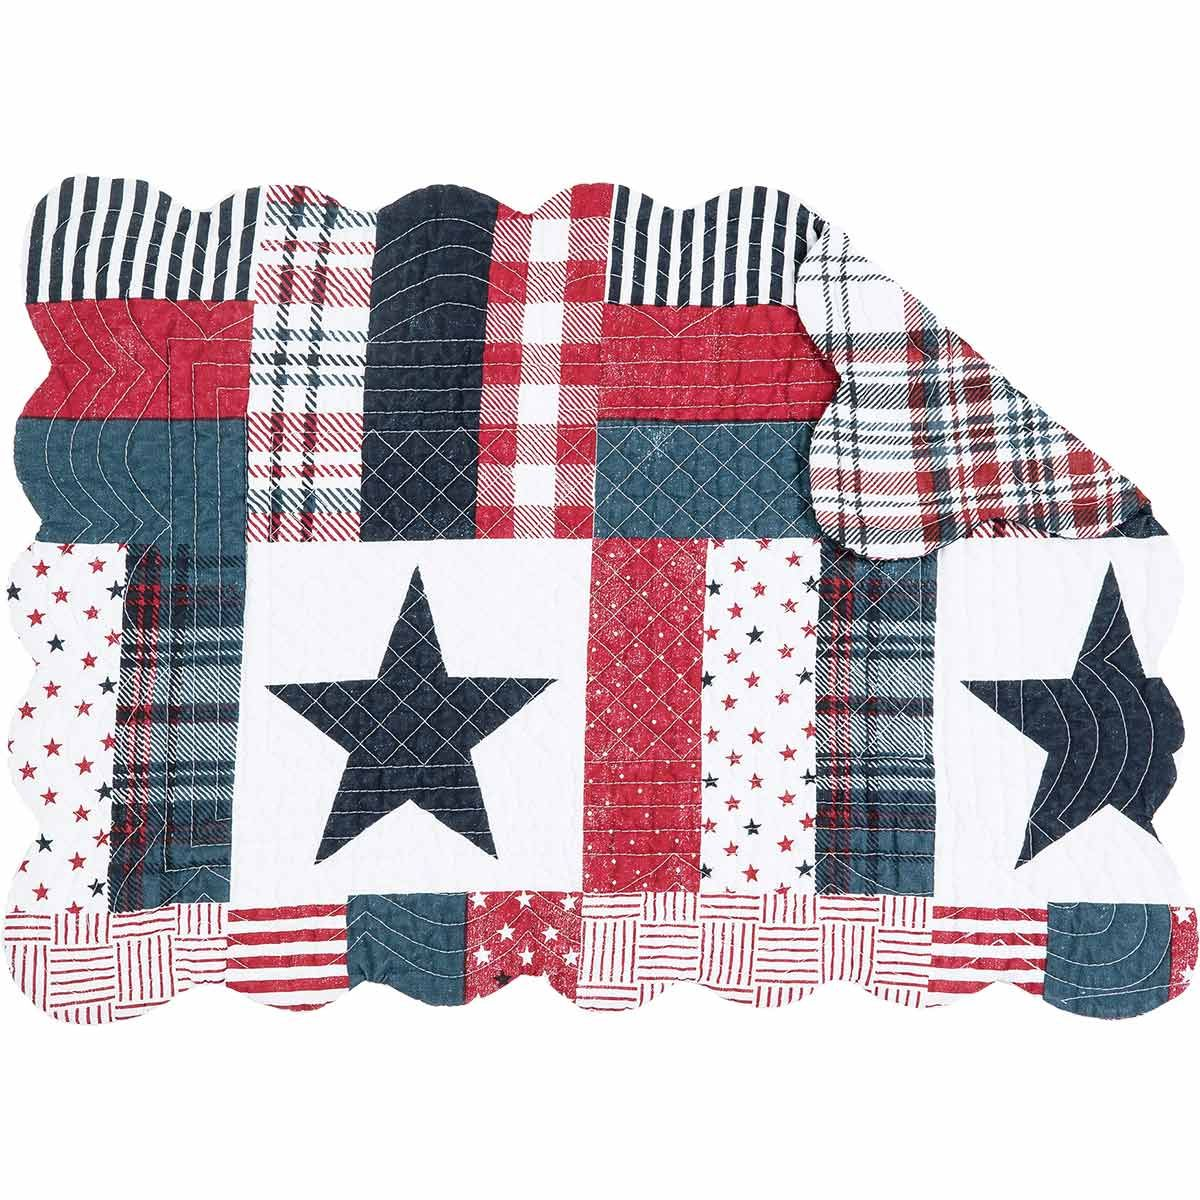 Country Picnic Reversible Placemats - Set of 6